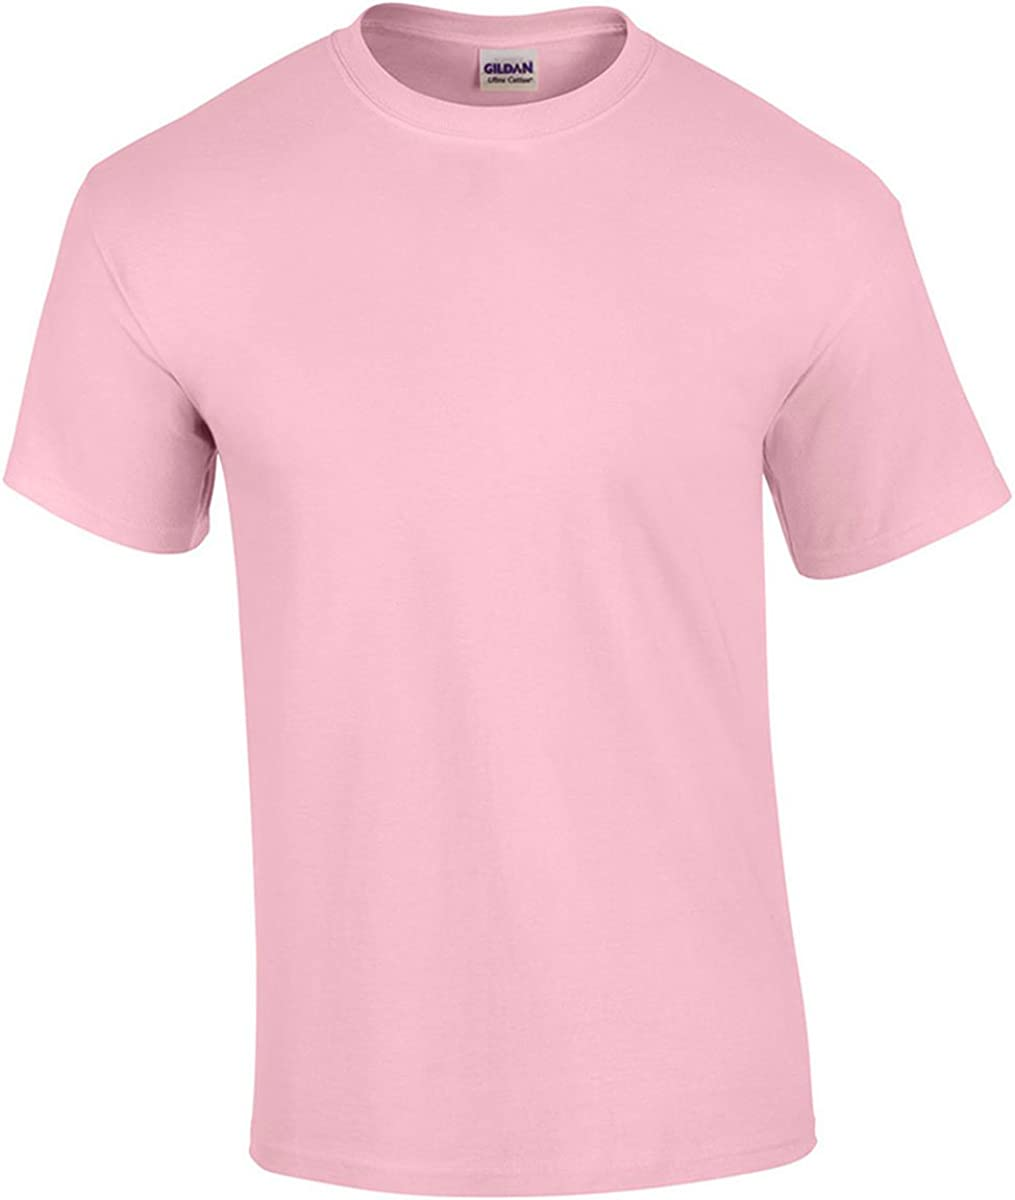 Gildan G5000 100% Cotton Short-Sleeve Tee - Light Pink - XL